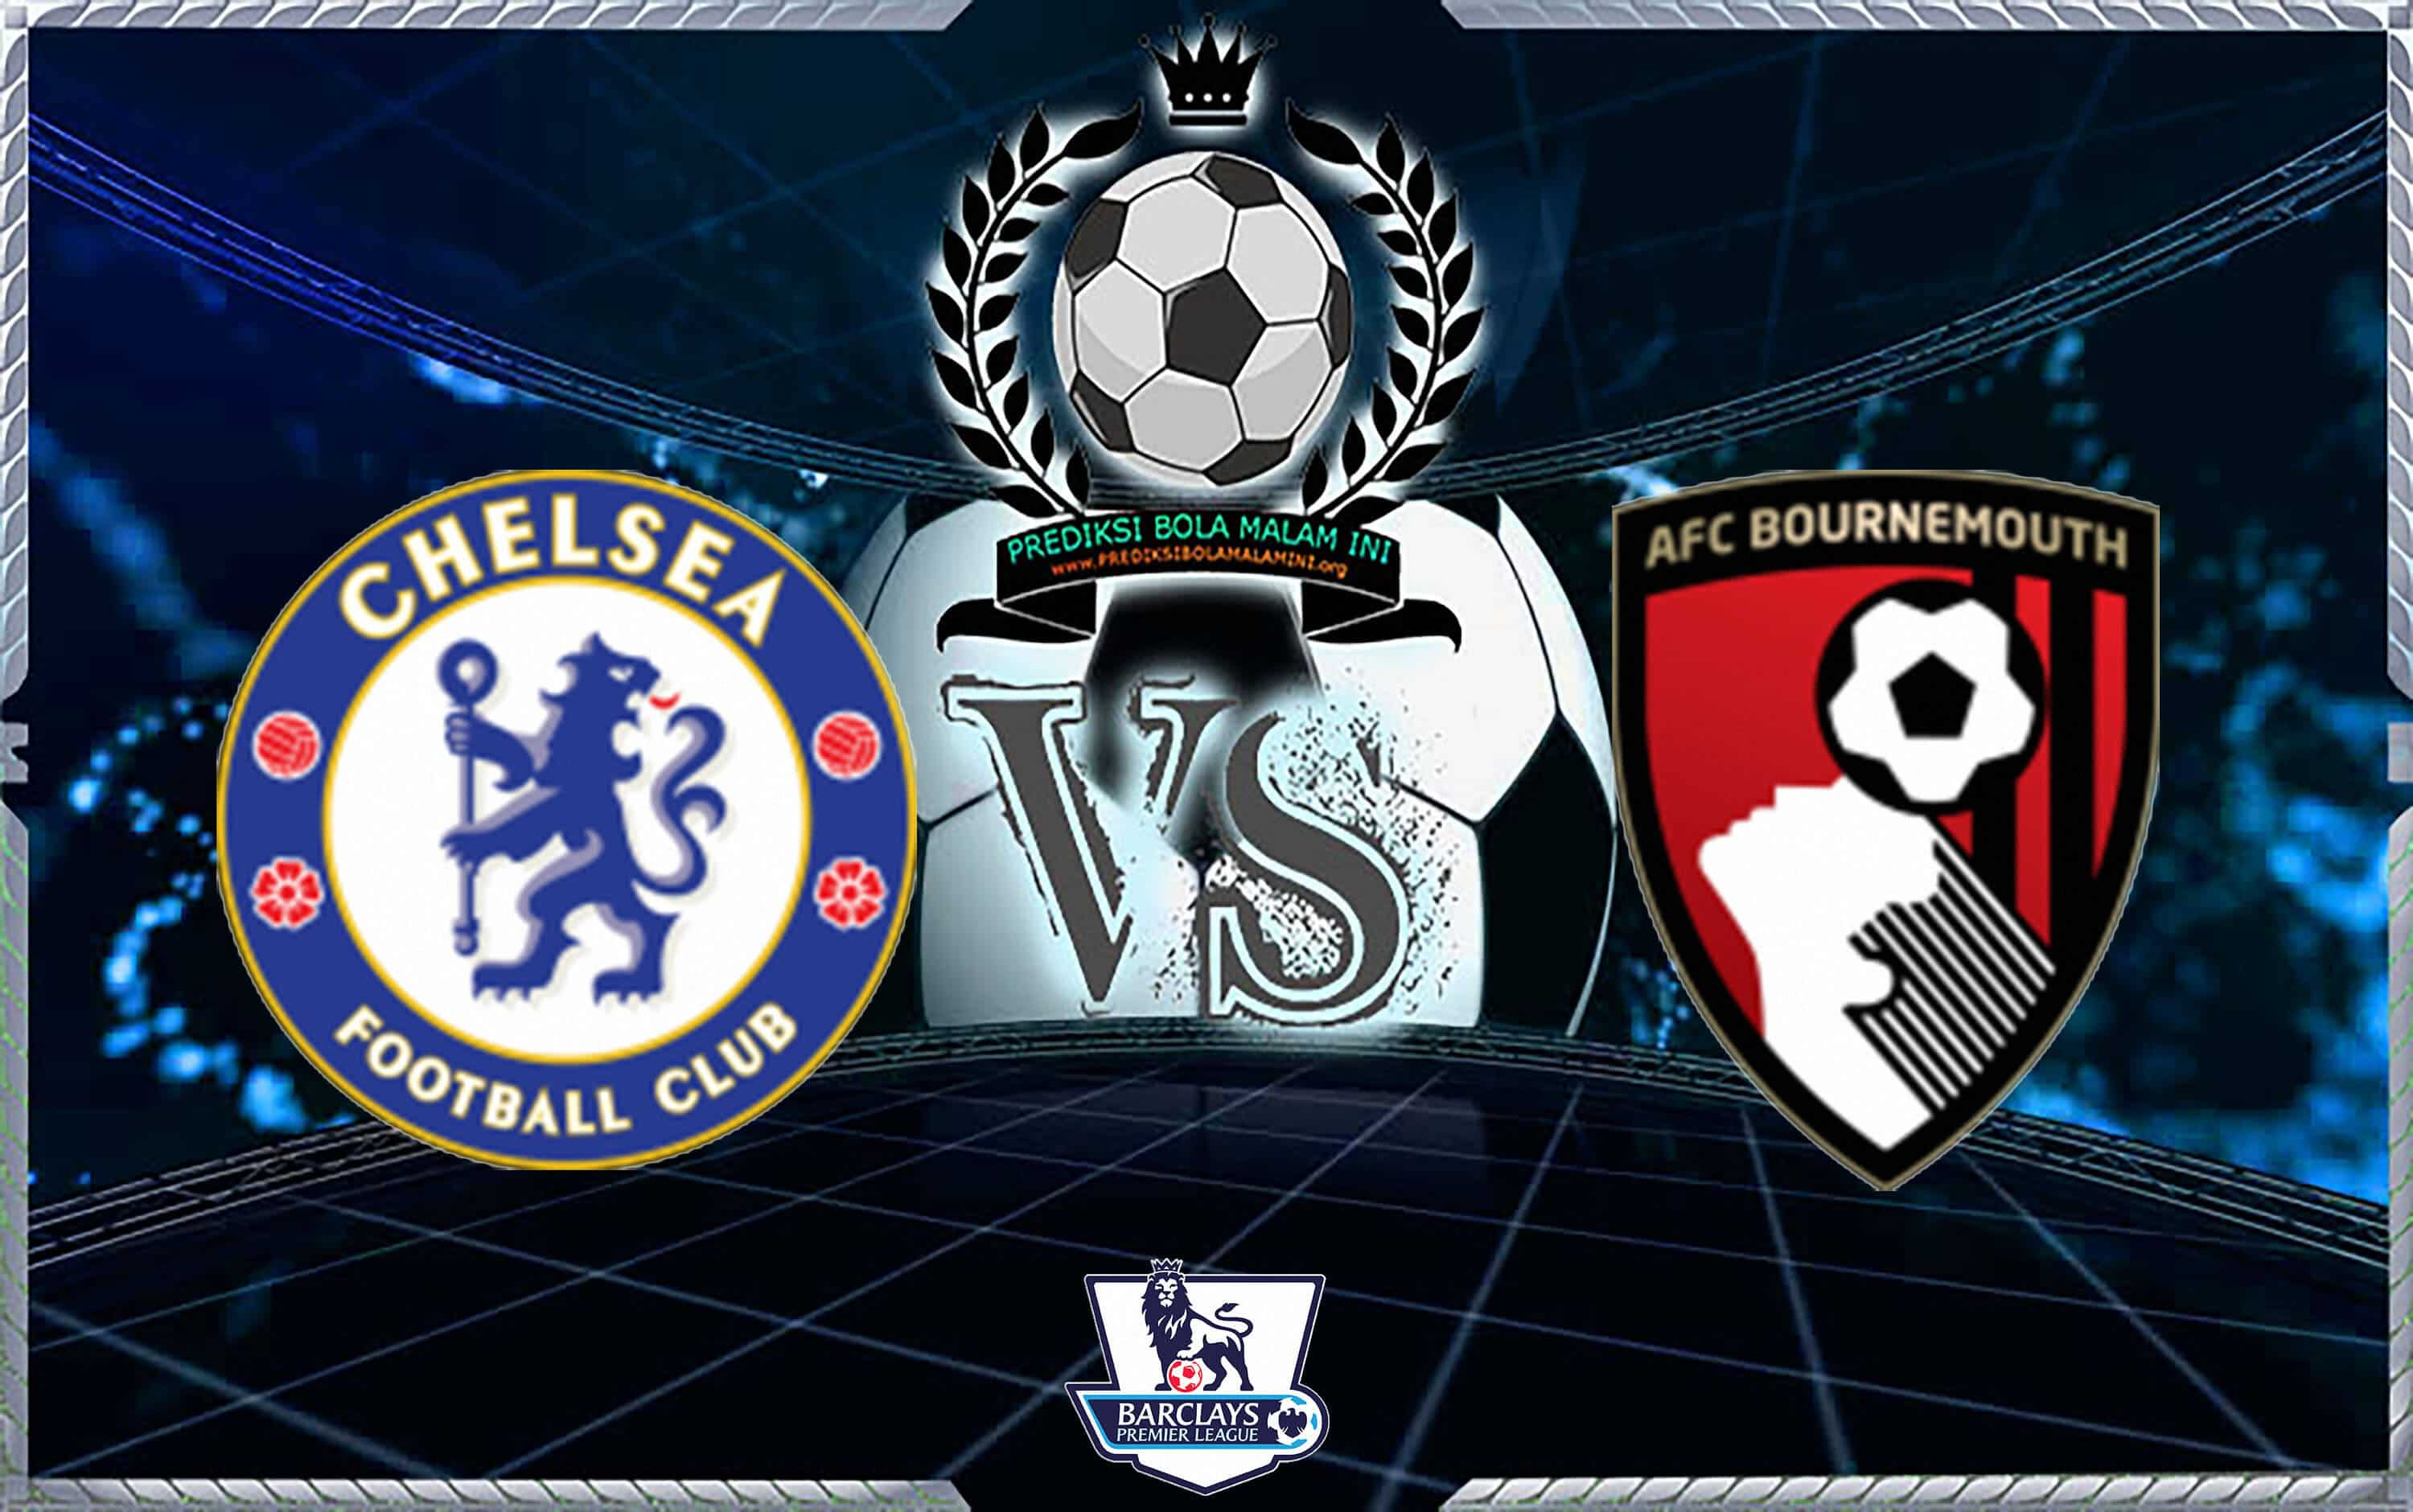 Prediksi Skor CHELSEA Vs AFC BOURNEMOUTH 1 September 2018